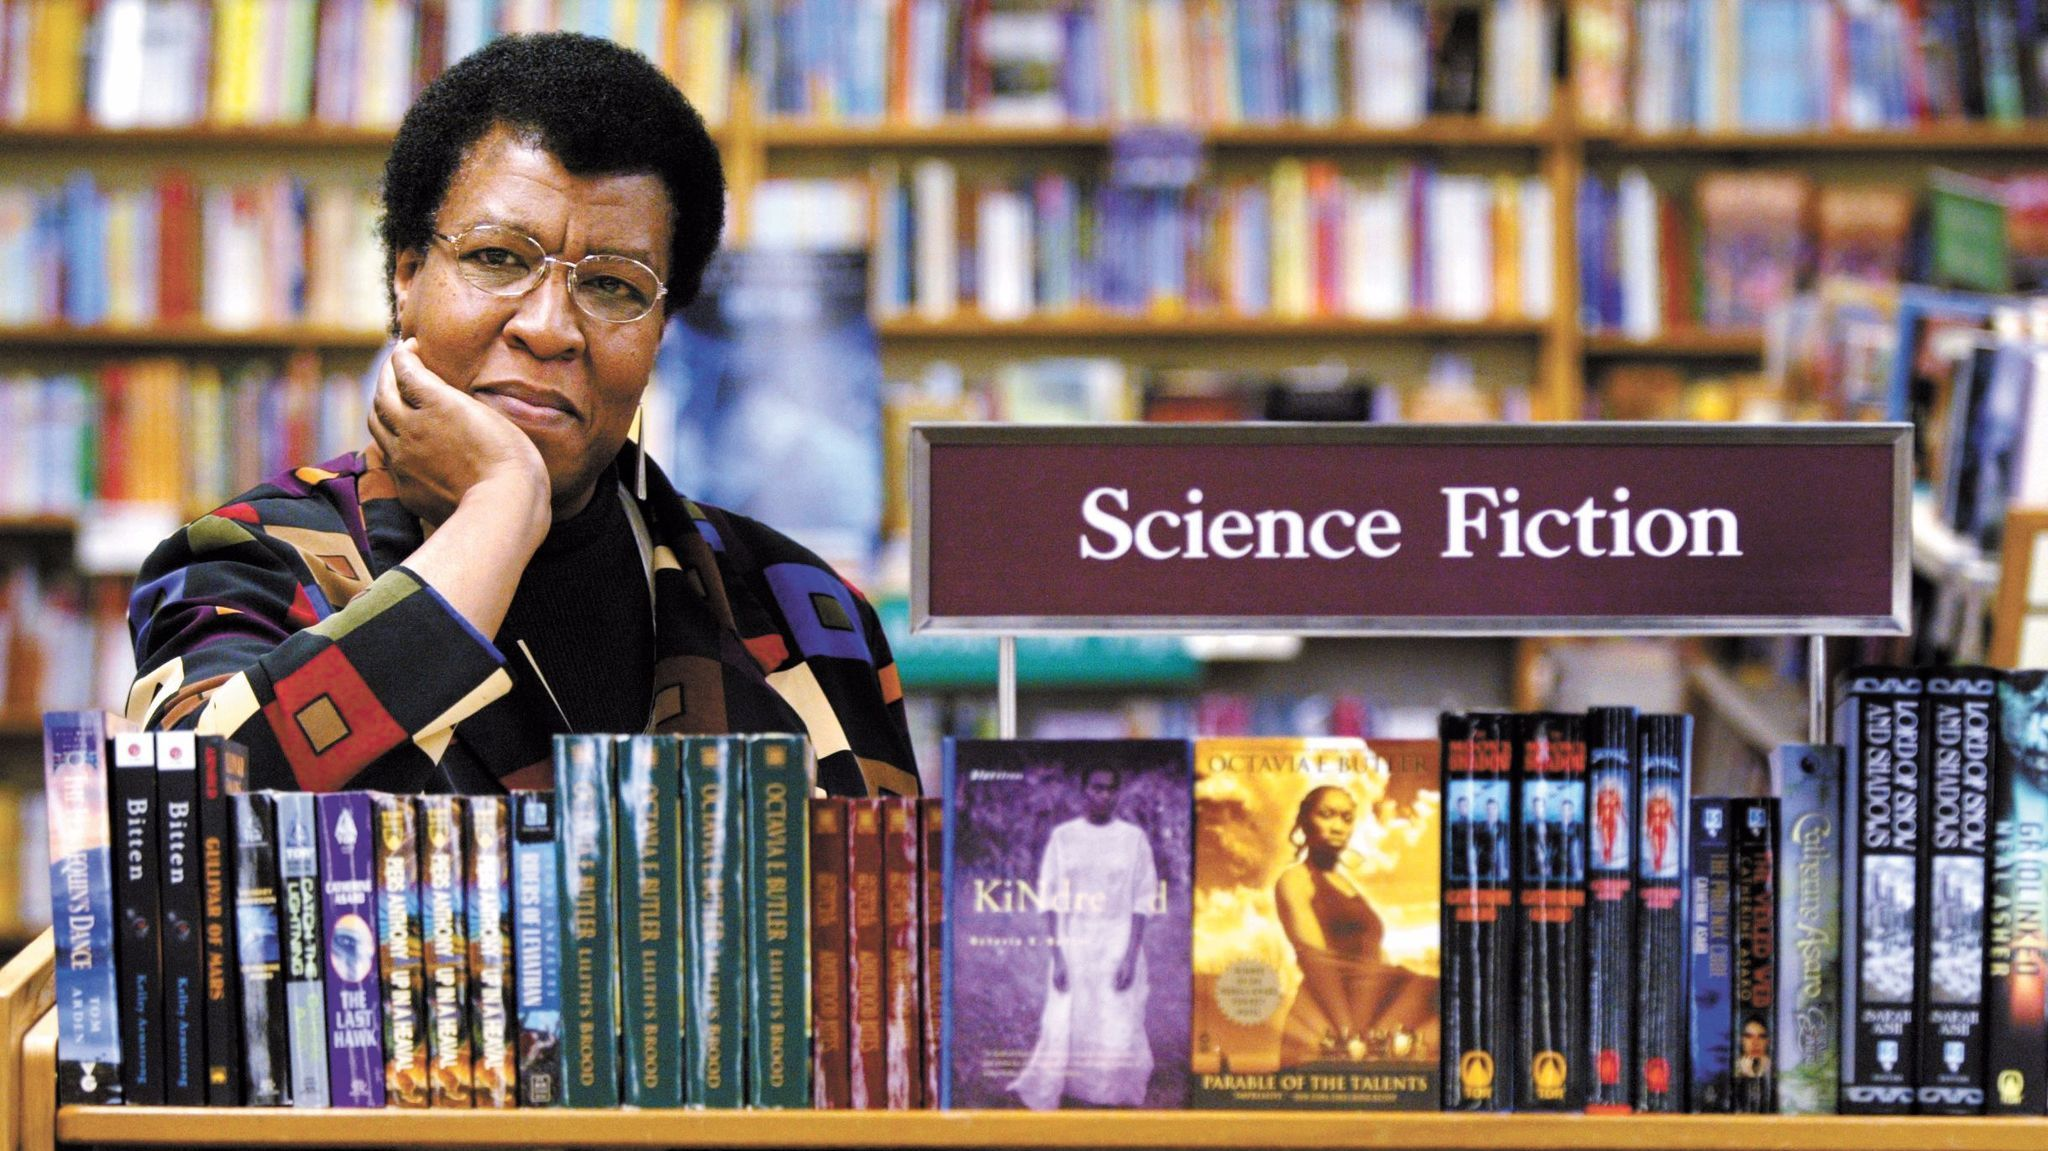 Octavia Butler is pictured in 2004 near some of her novels at a store in Seattle.